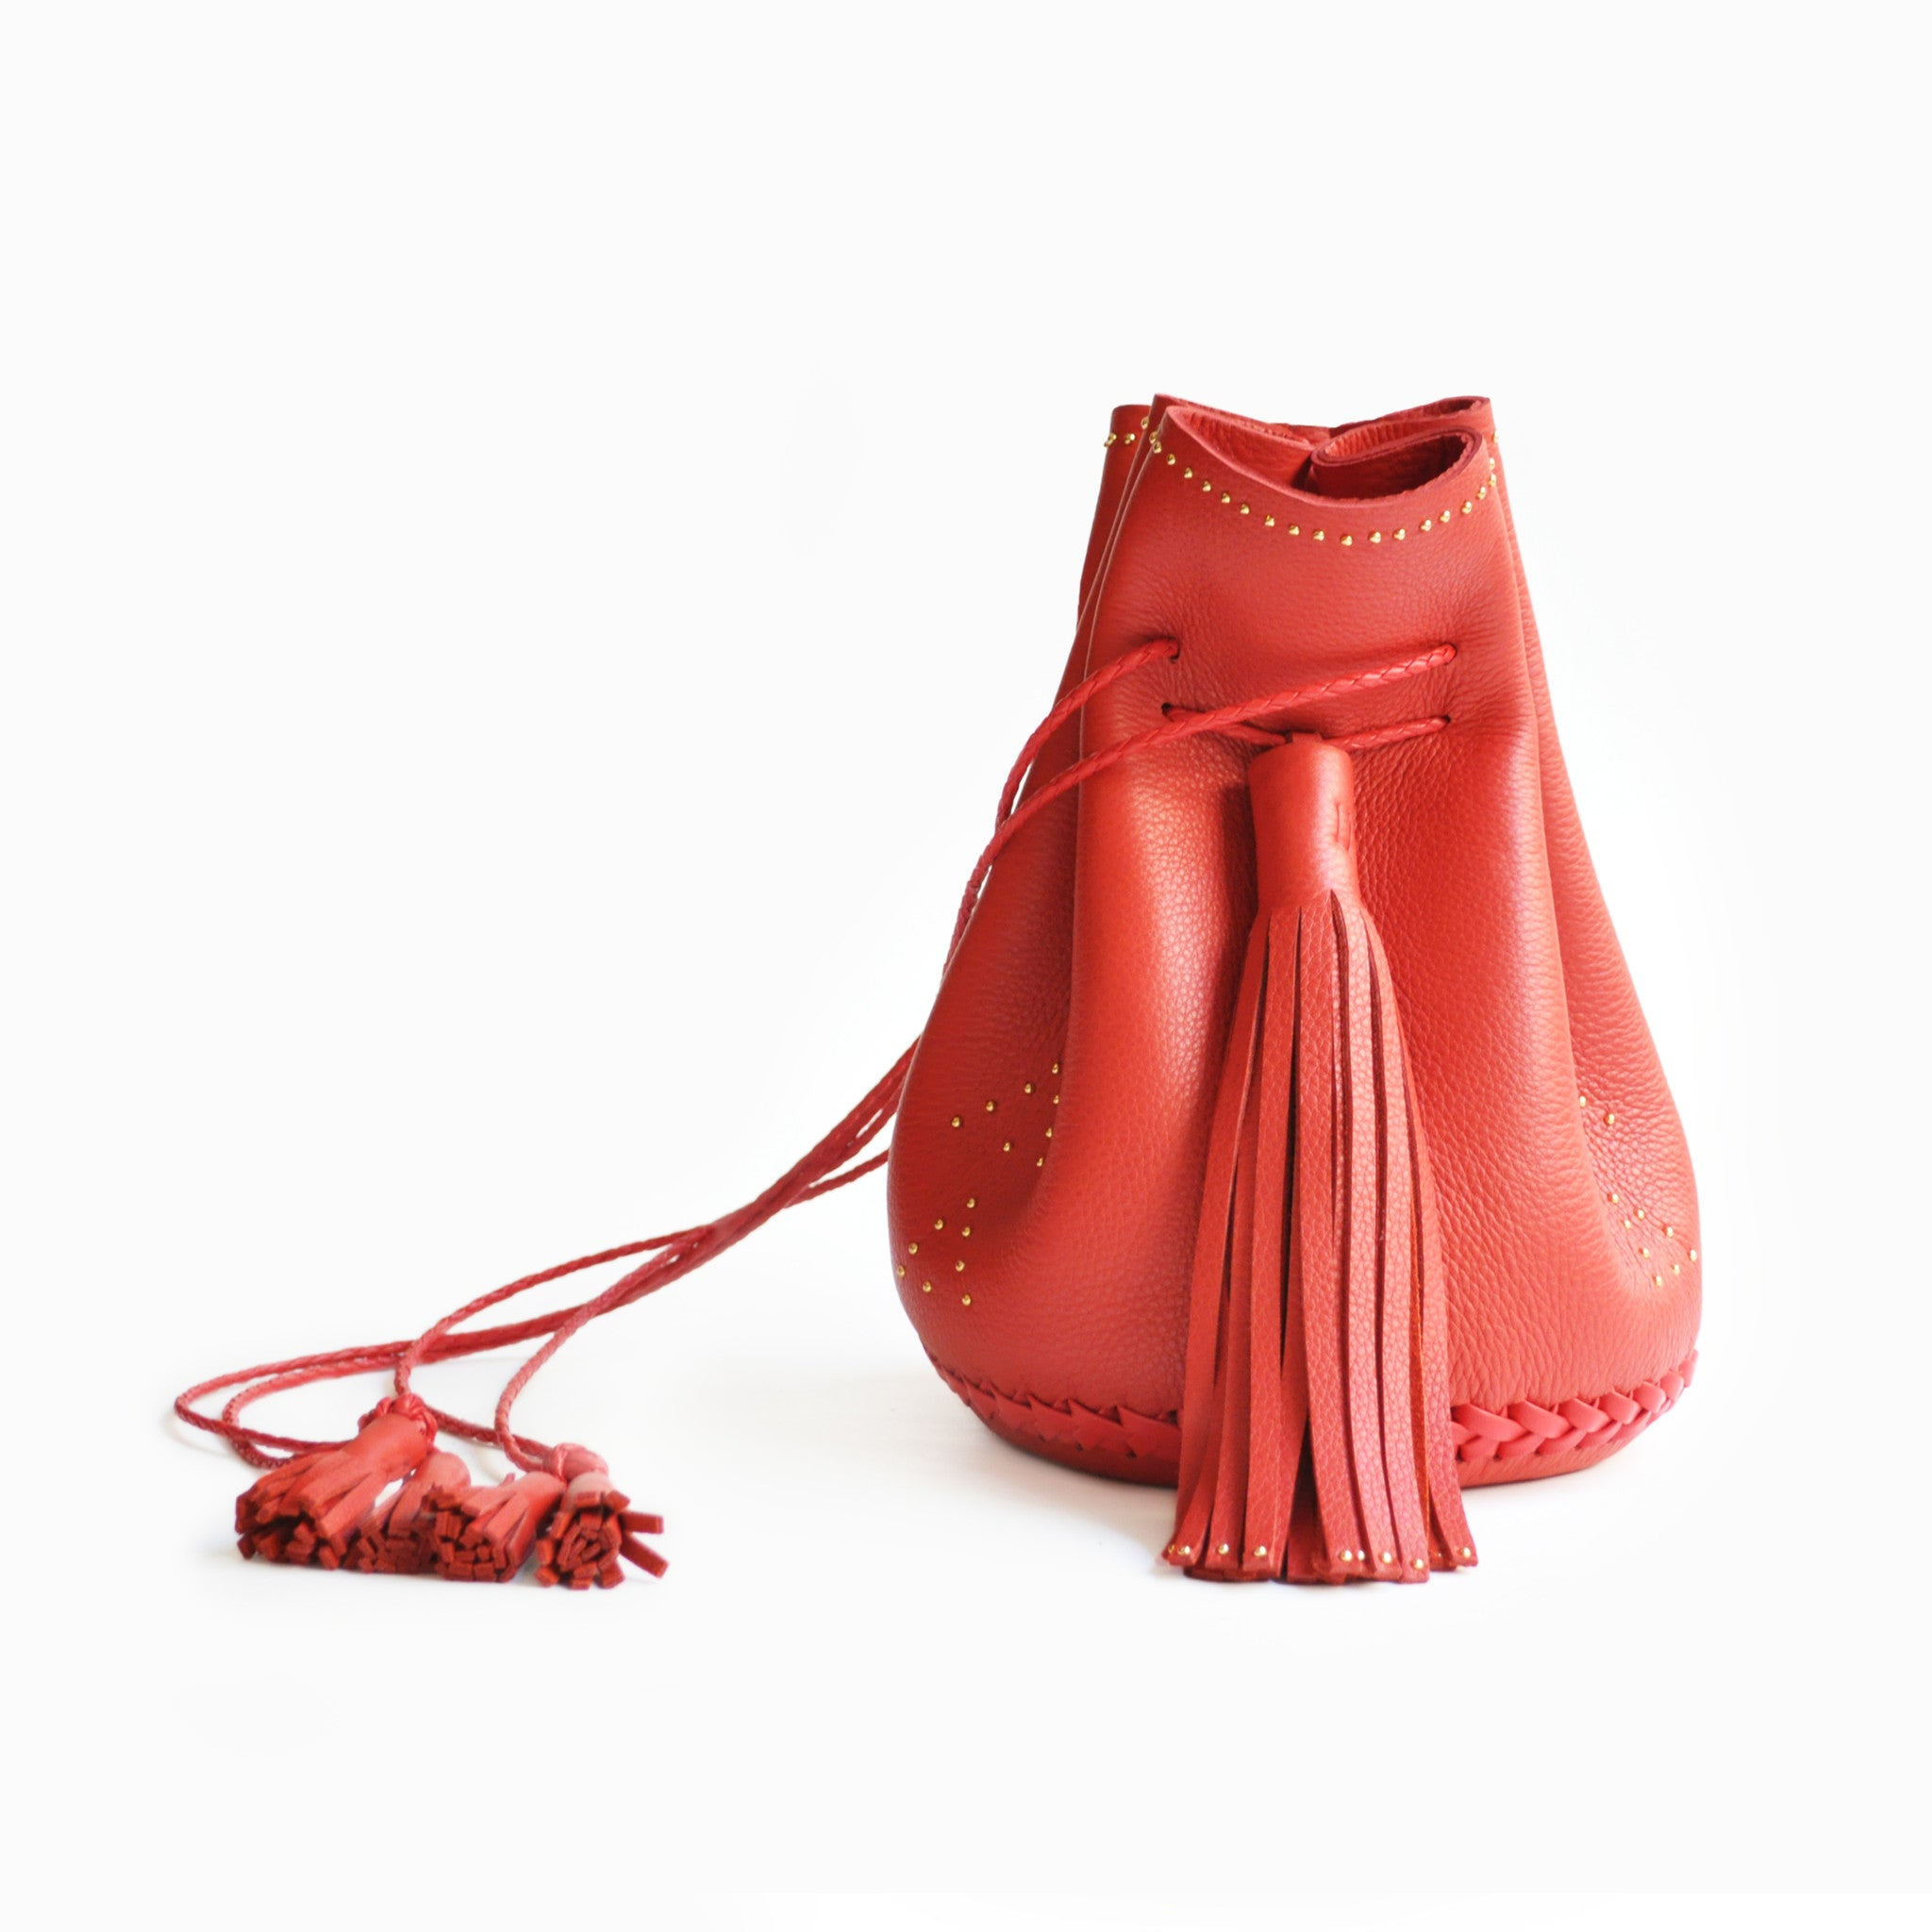 Red Hand Studded Studs Stud Chevron Leather Bullet Bag Wendy Nichol Handbag Purse Designer Handmade in NYC New York City Bucket Bag Drawstring Pouch Large Fringe Tassel